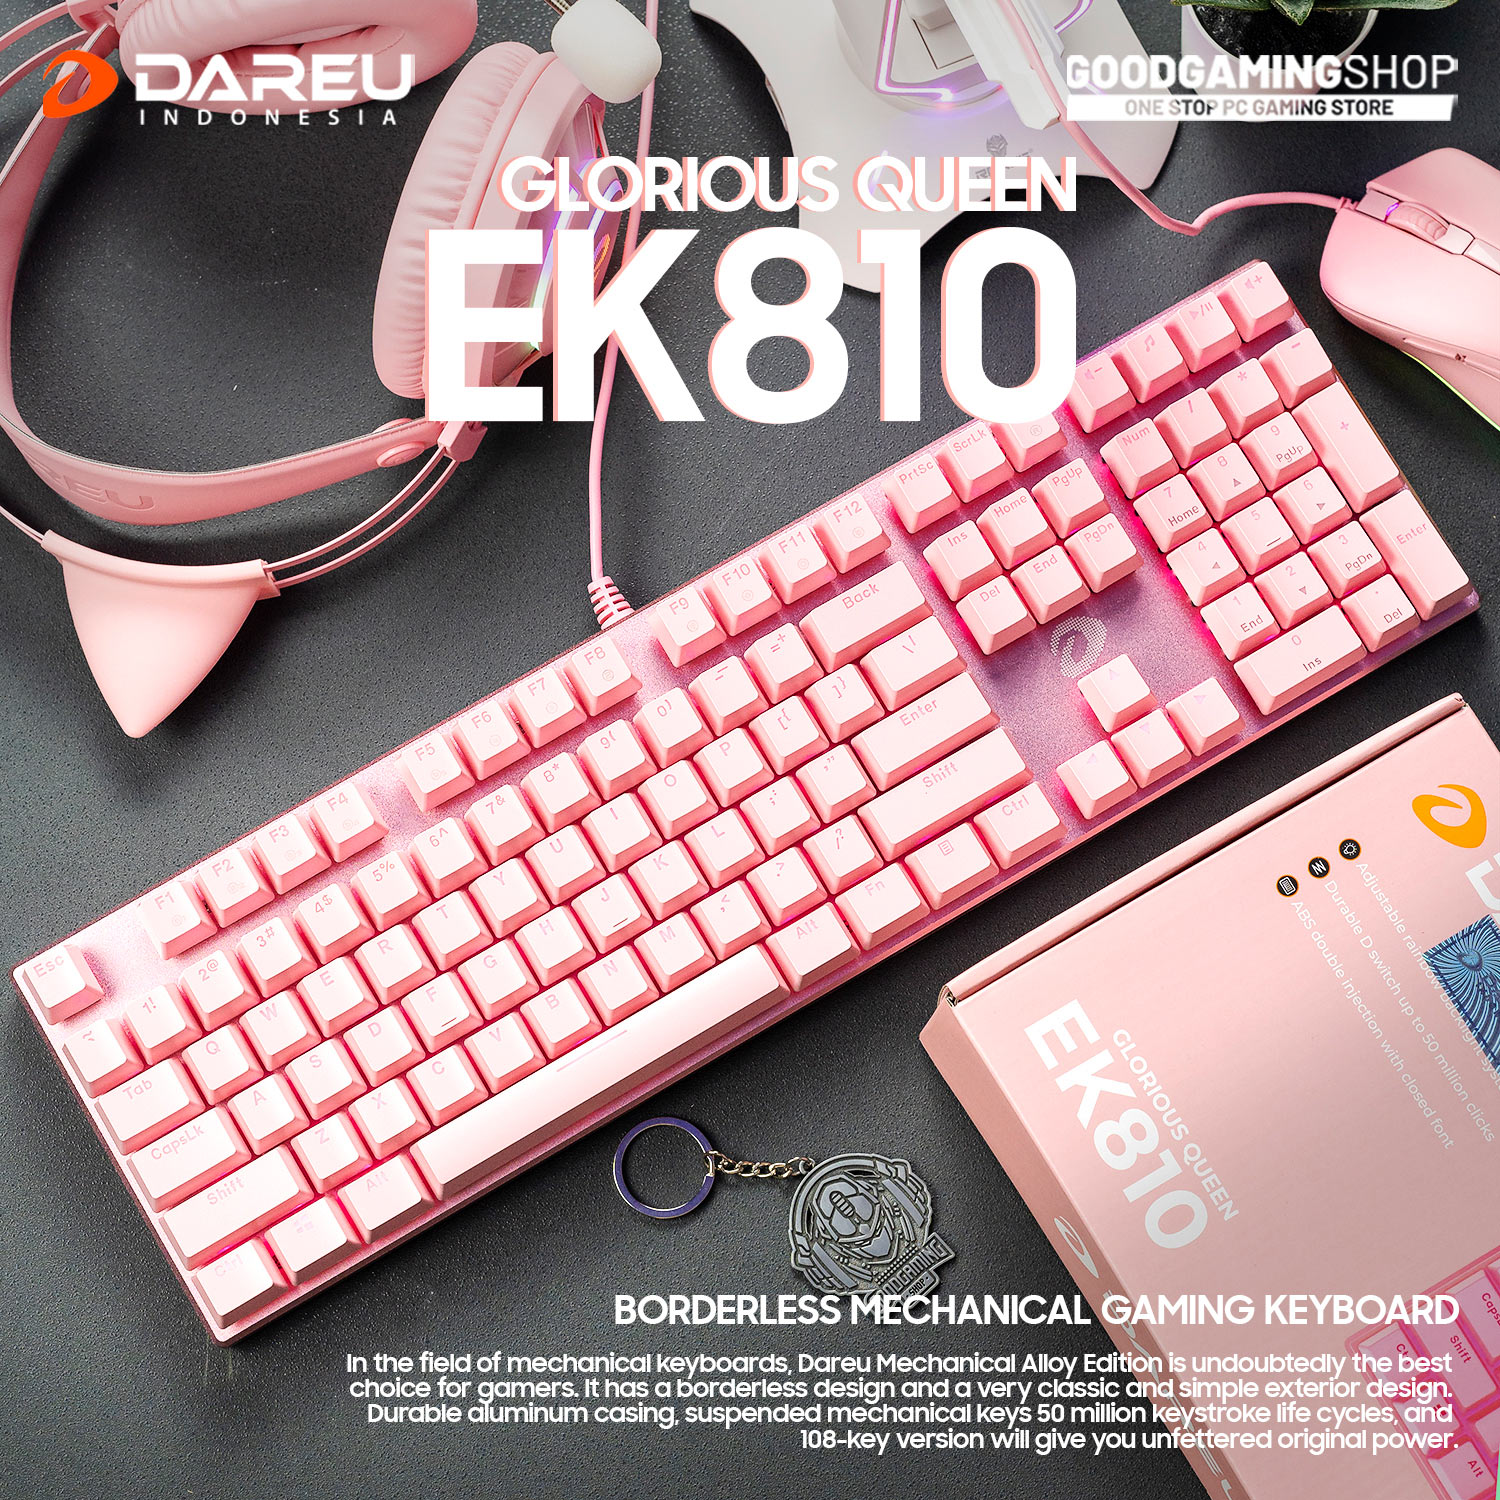 Dareu EK810 – Good Gaming Shop